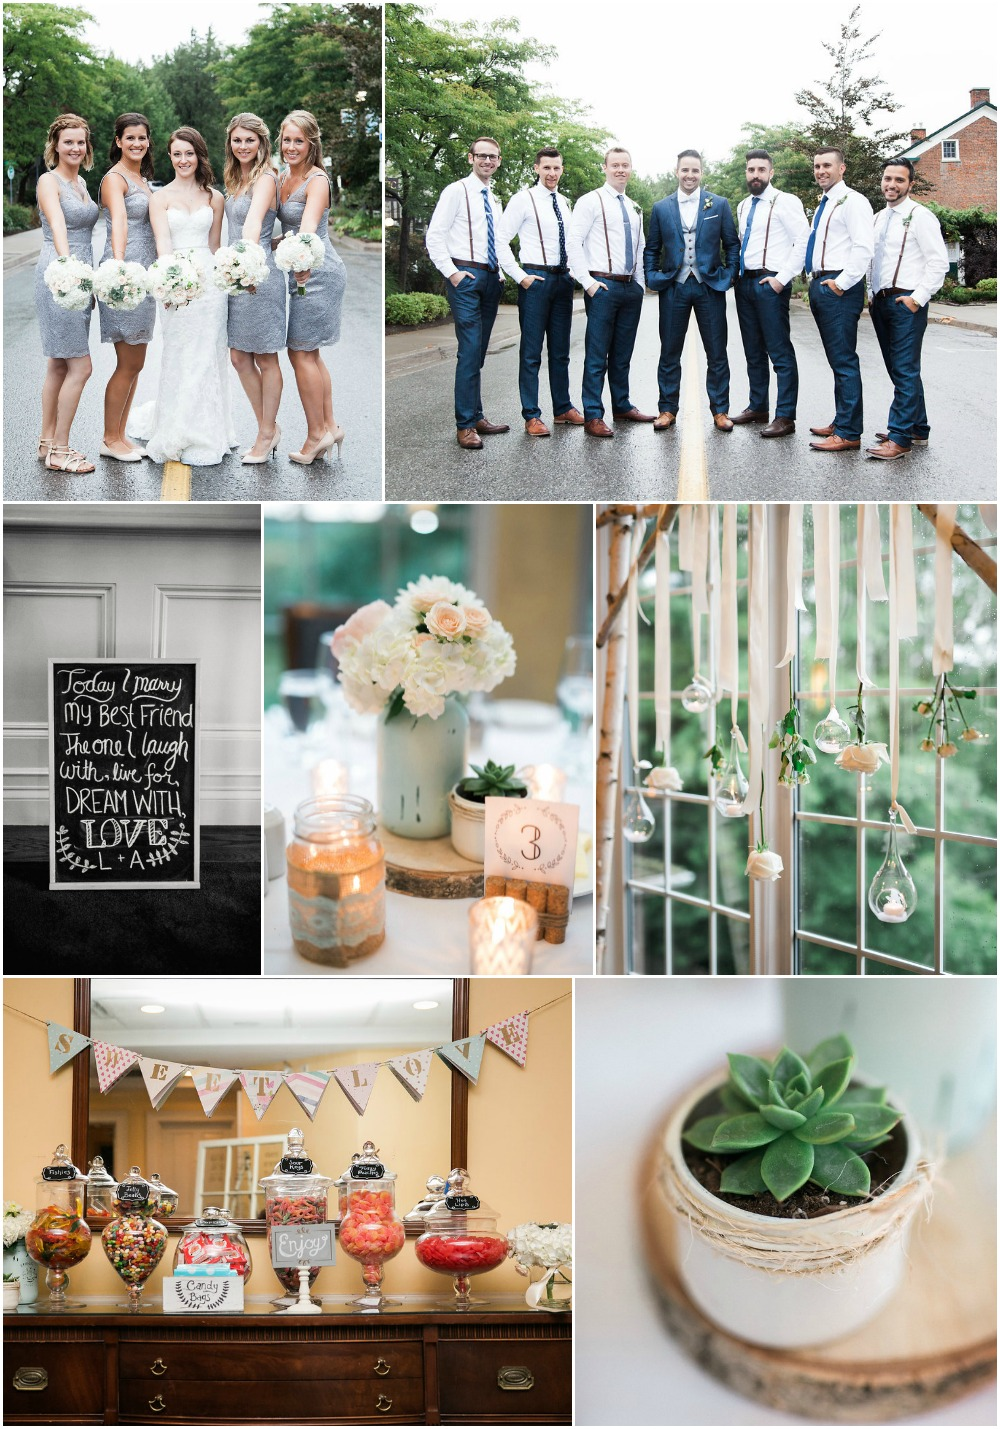 Niagara Wedding_Niagara Wedding Flowers_Cave Spring Wedding_Inn on the Twenty wedding_Succulent Wedding Ideas_Candy Table_Ooh La La Designs_Simply Lace Photography_image 5